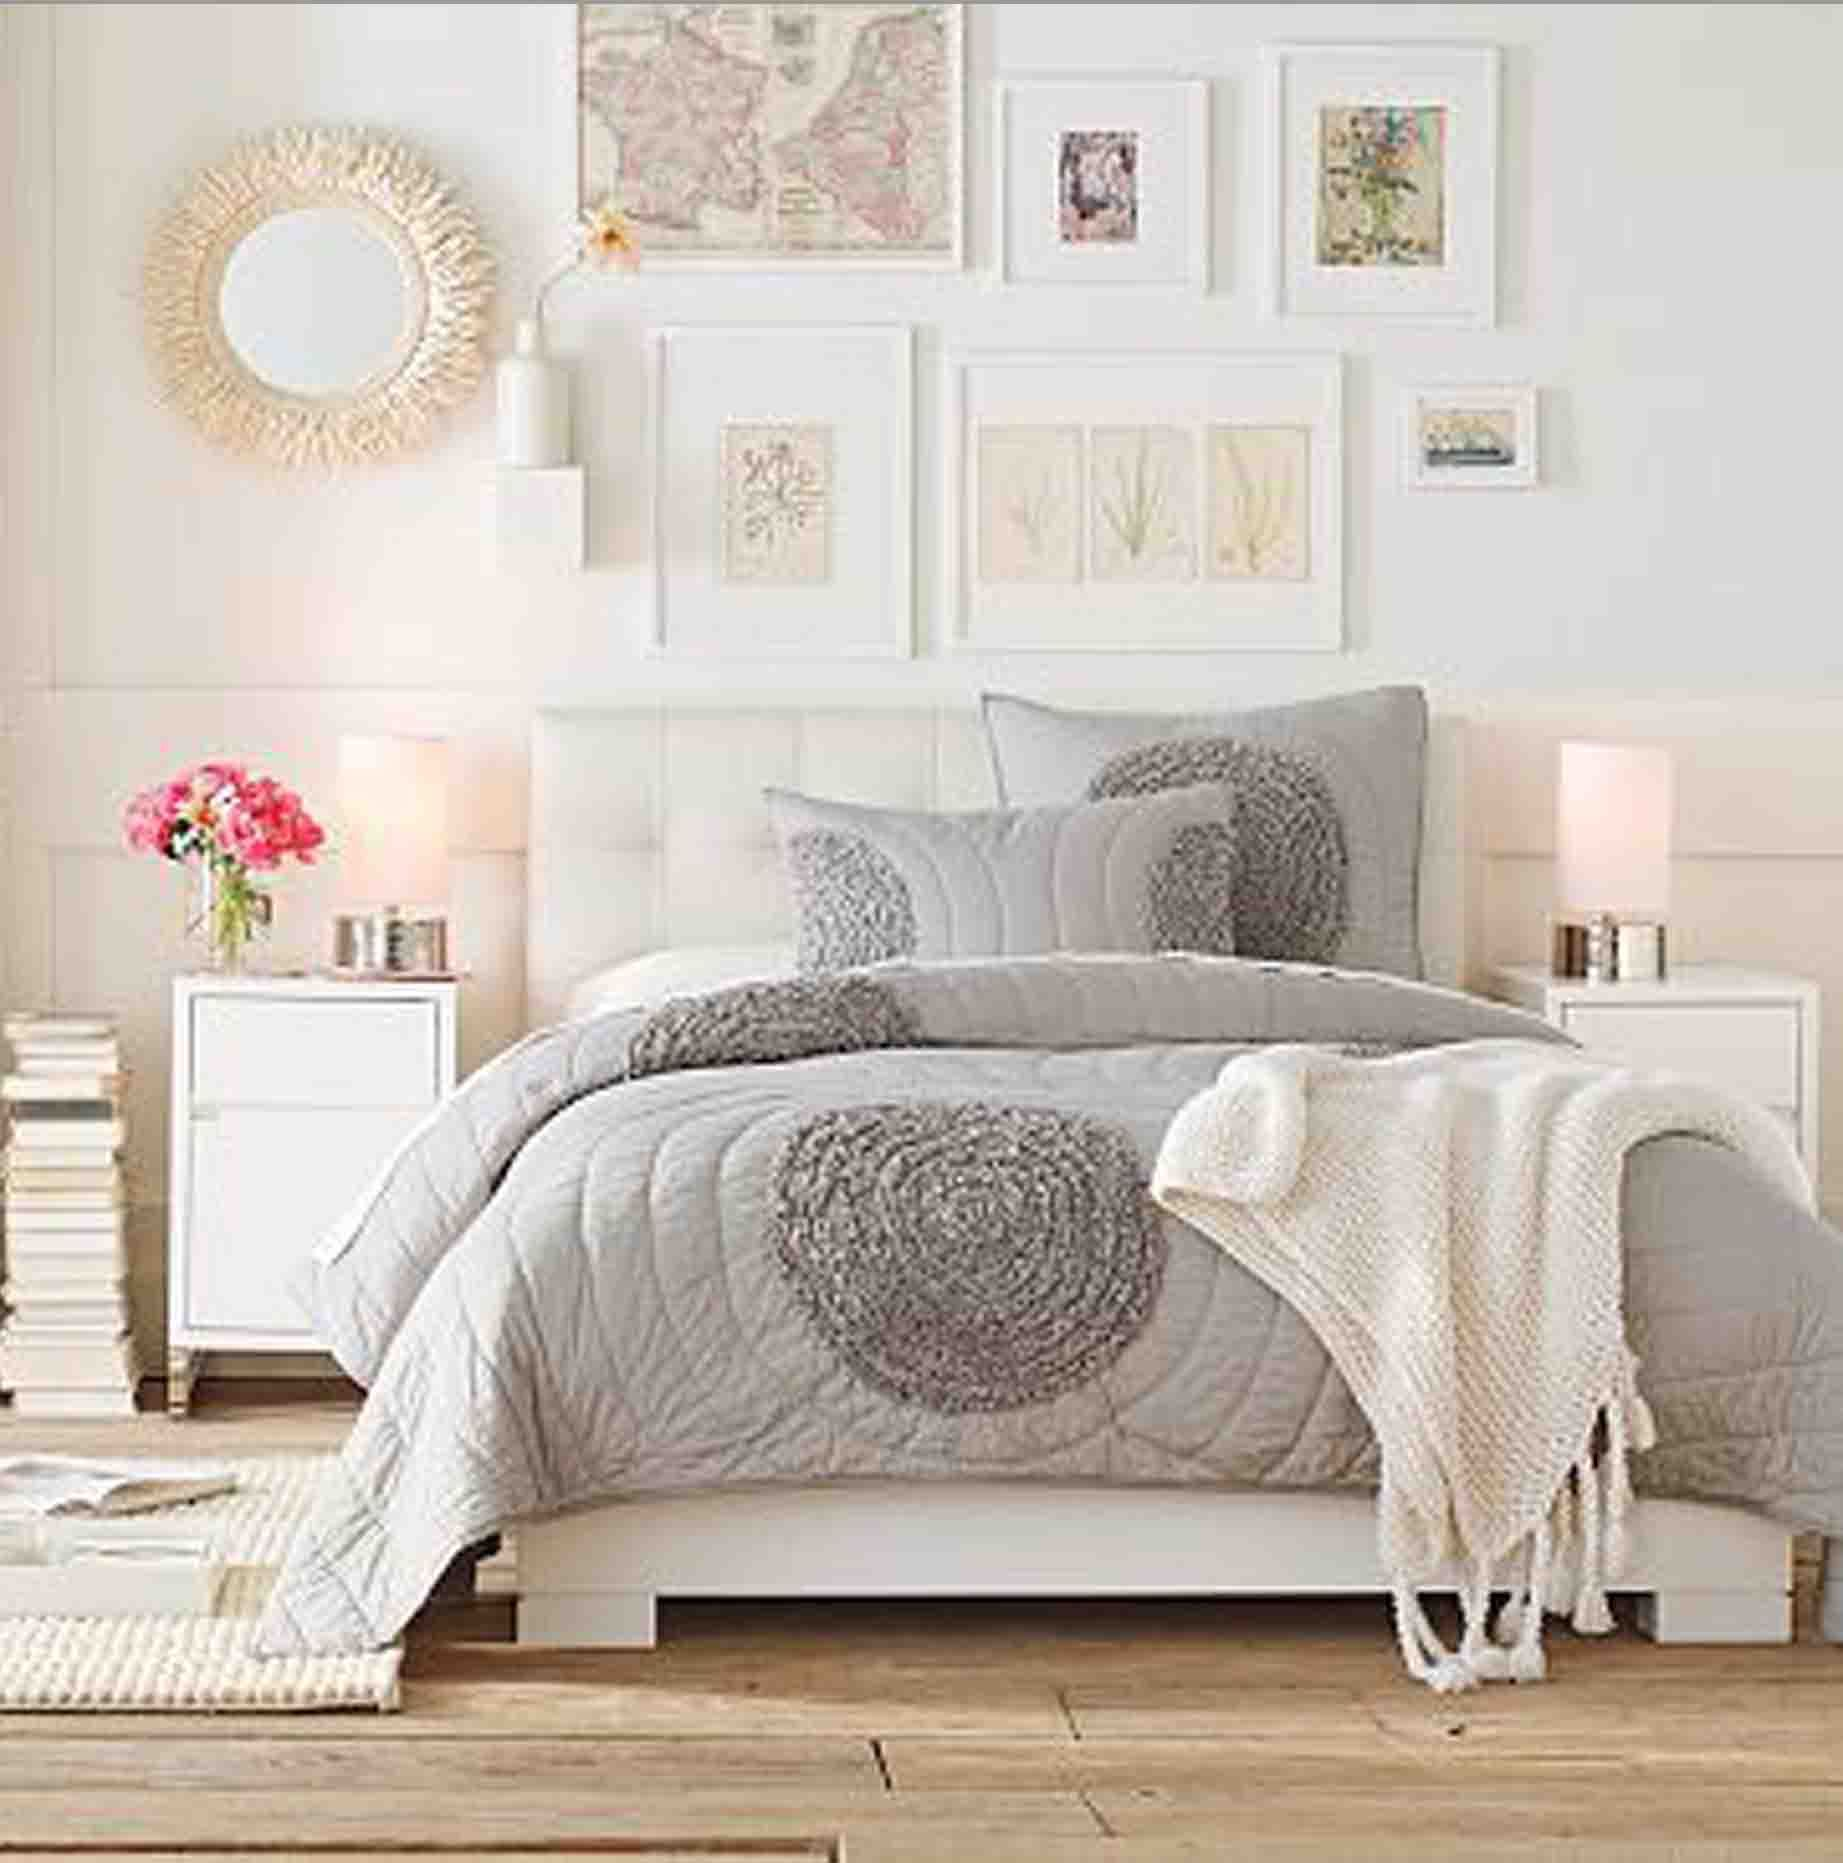 Light and bright bedroom ideas. Grey, nutral, white, feminine.